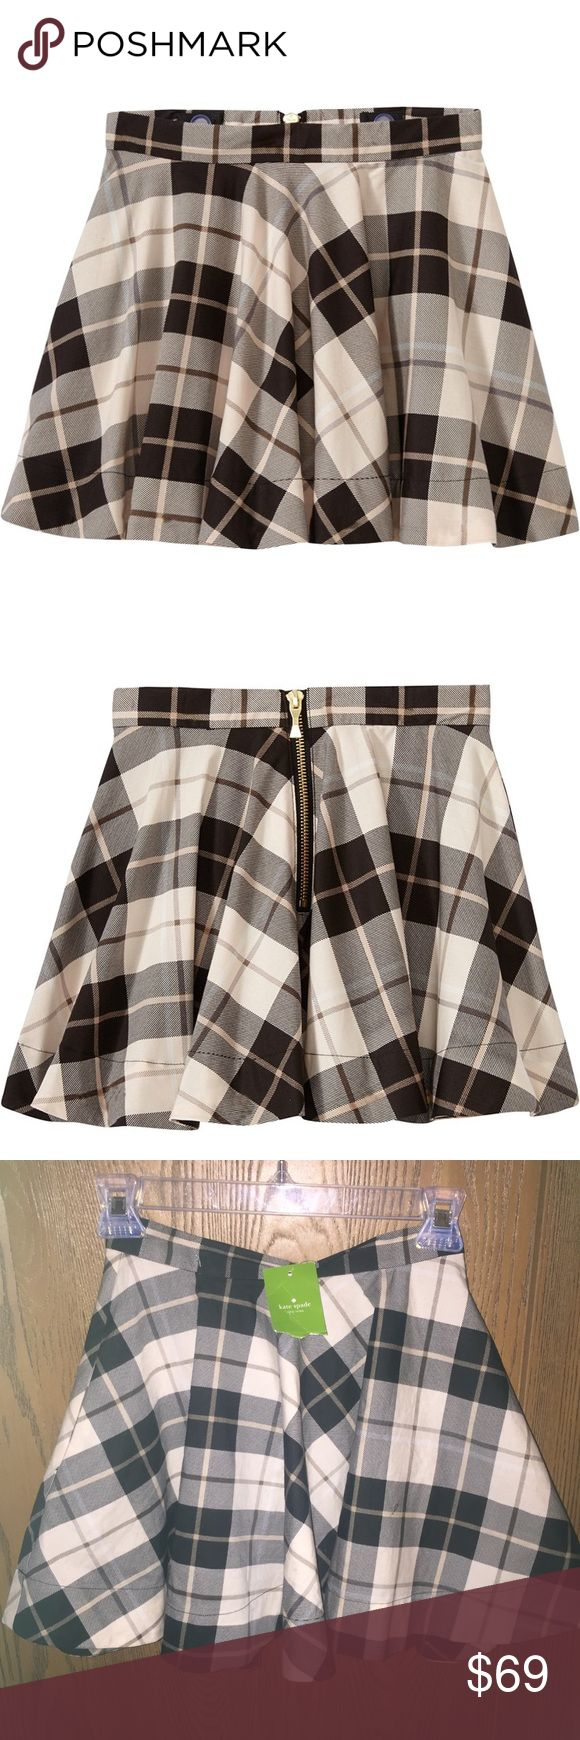 """Kate spade """"Skirt the rules"""" Woodland plaid skirt Never worn. New w/tags. Little girls Kate Spade """"Skirt the rules"""" plaid skirt♥️♥️ kate spade Bottoms Skirts"""